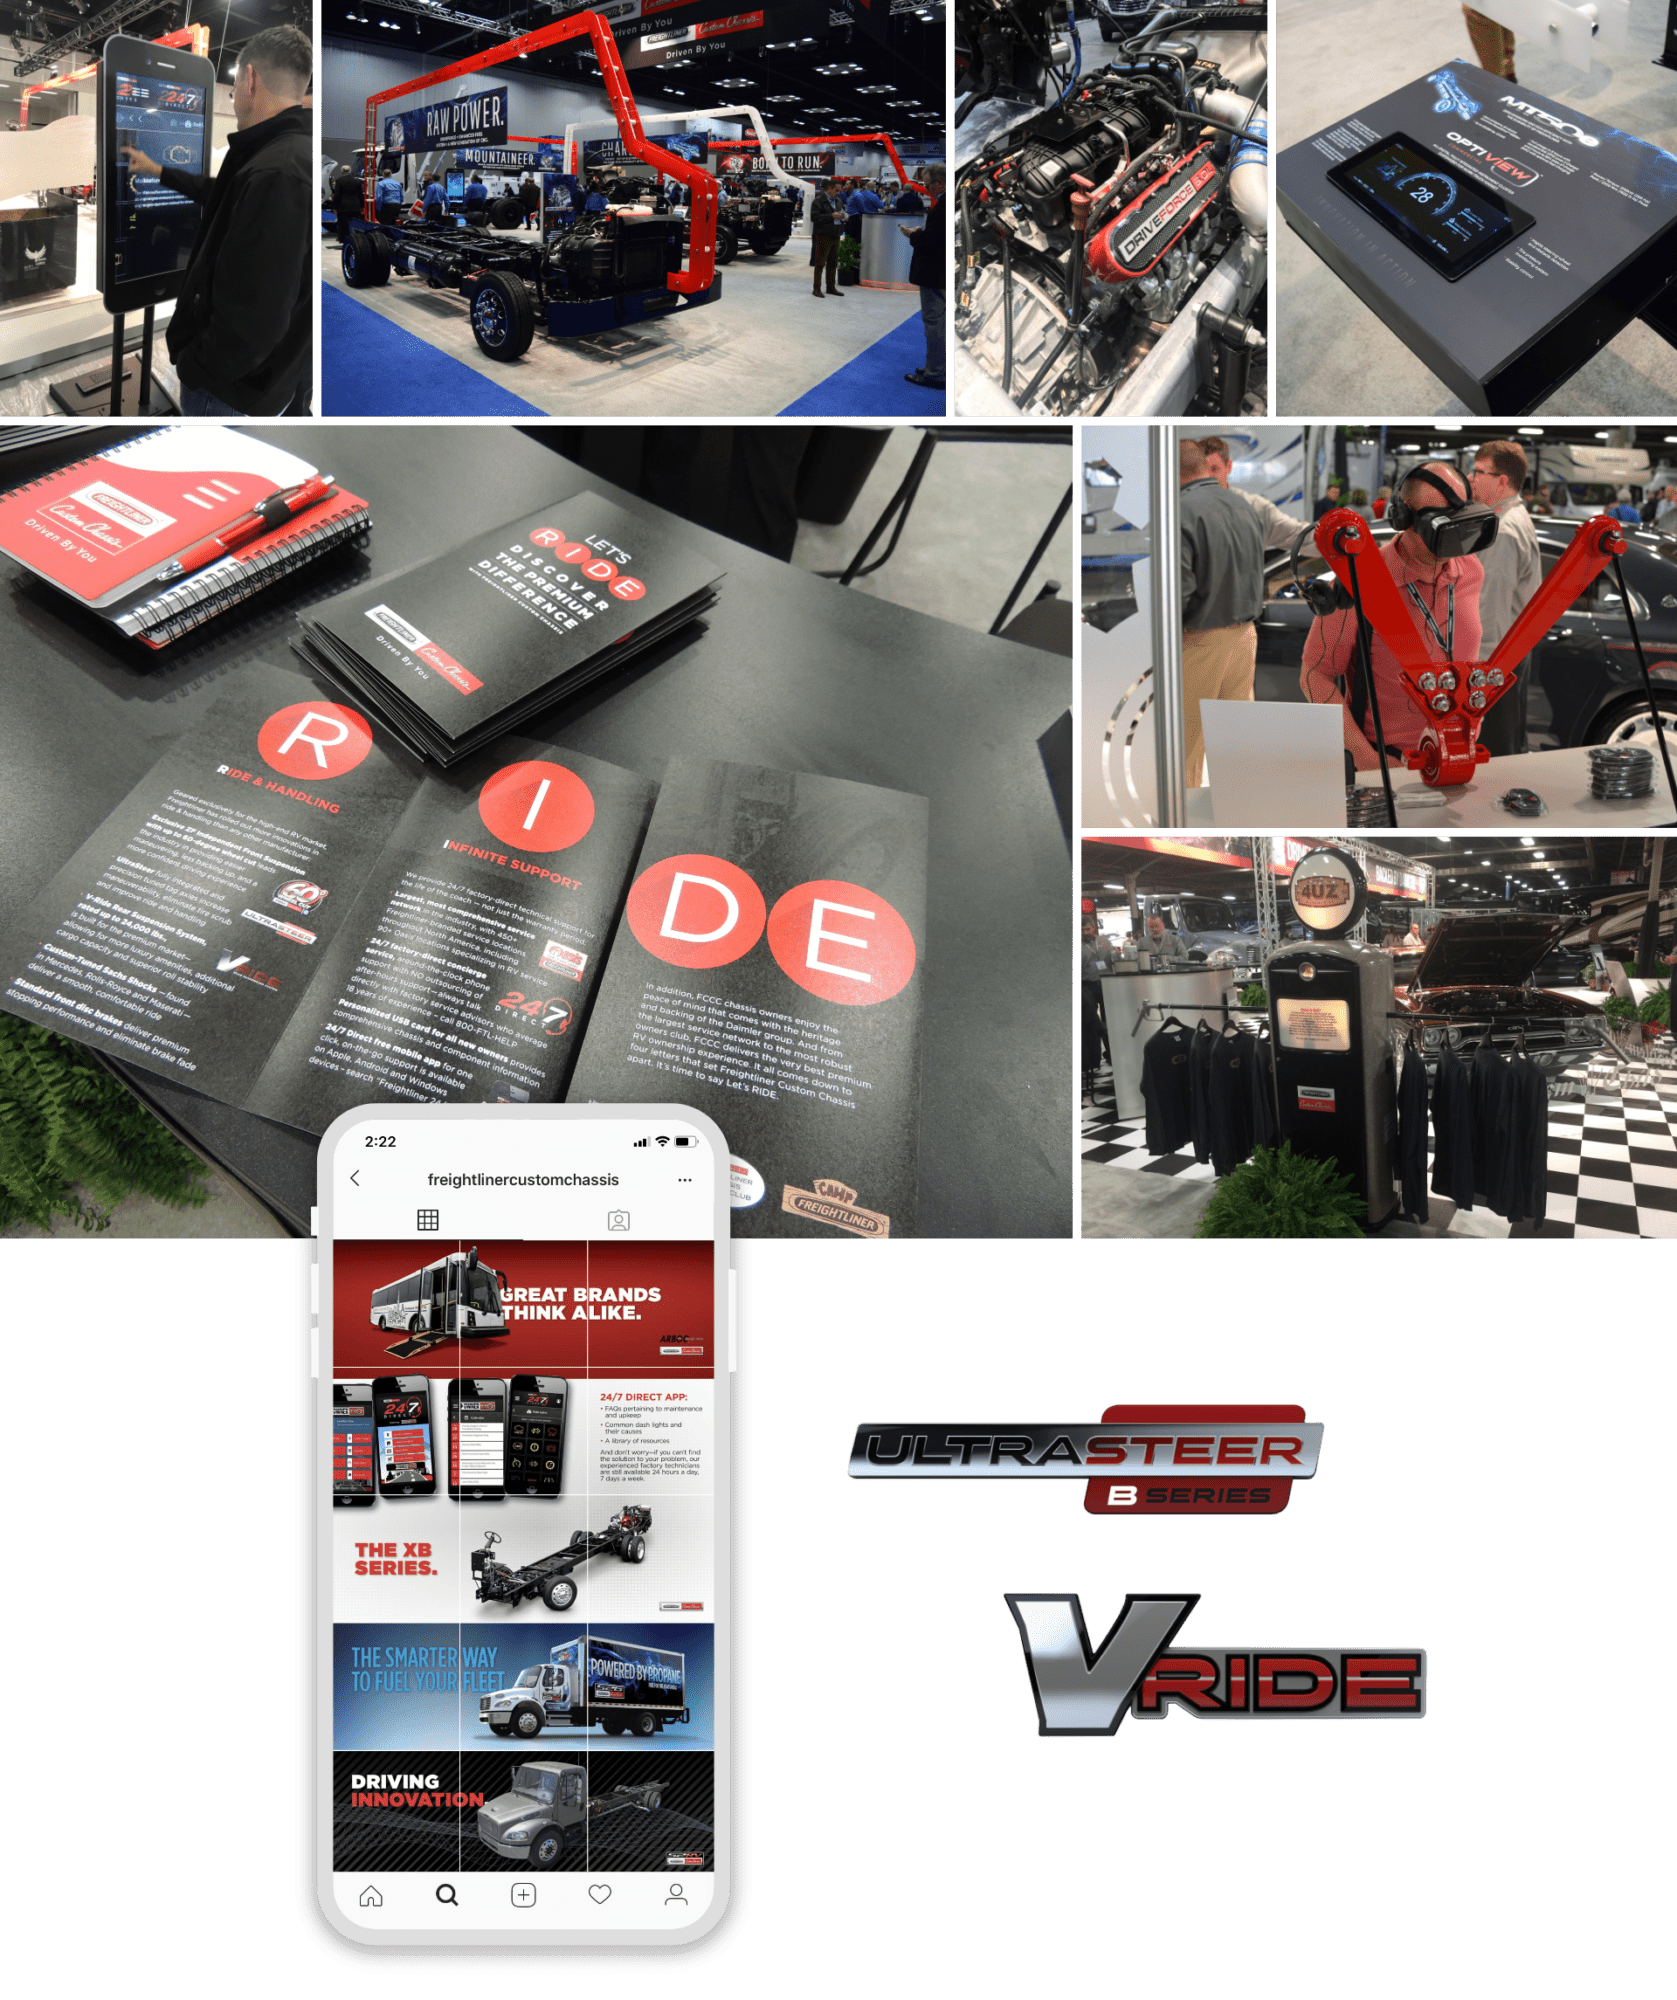 Freightliner Custom Chassis collage of print and product design, and app/website examples